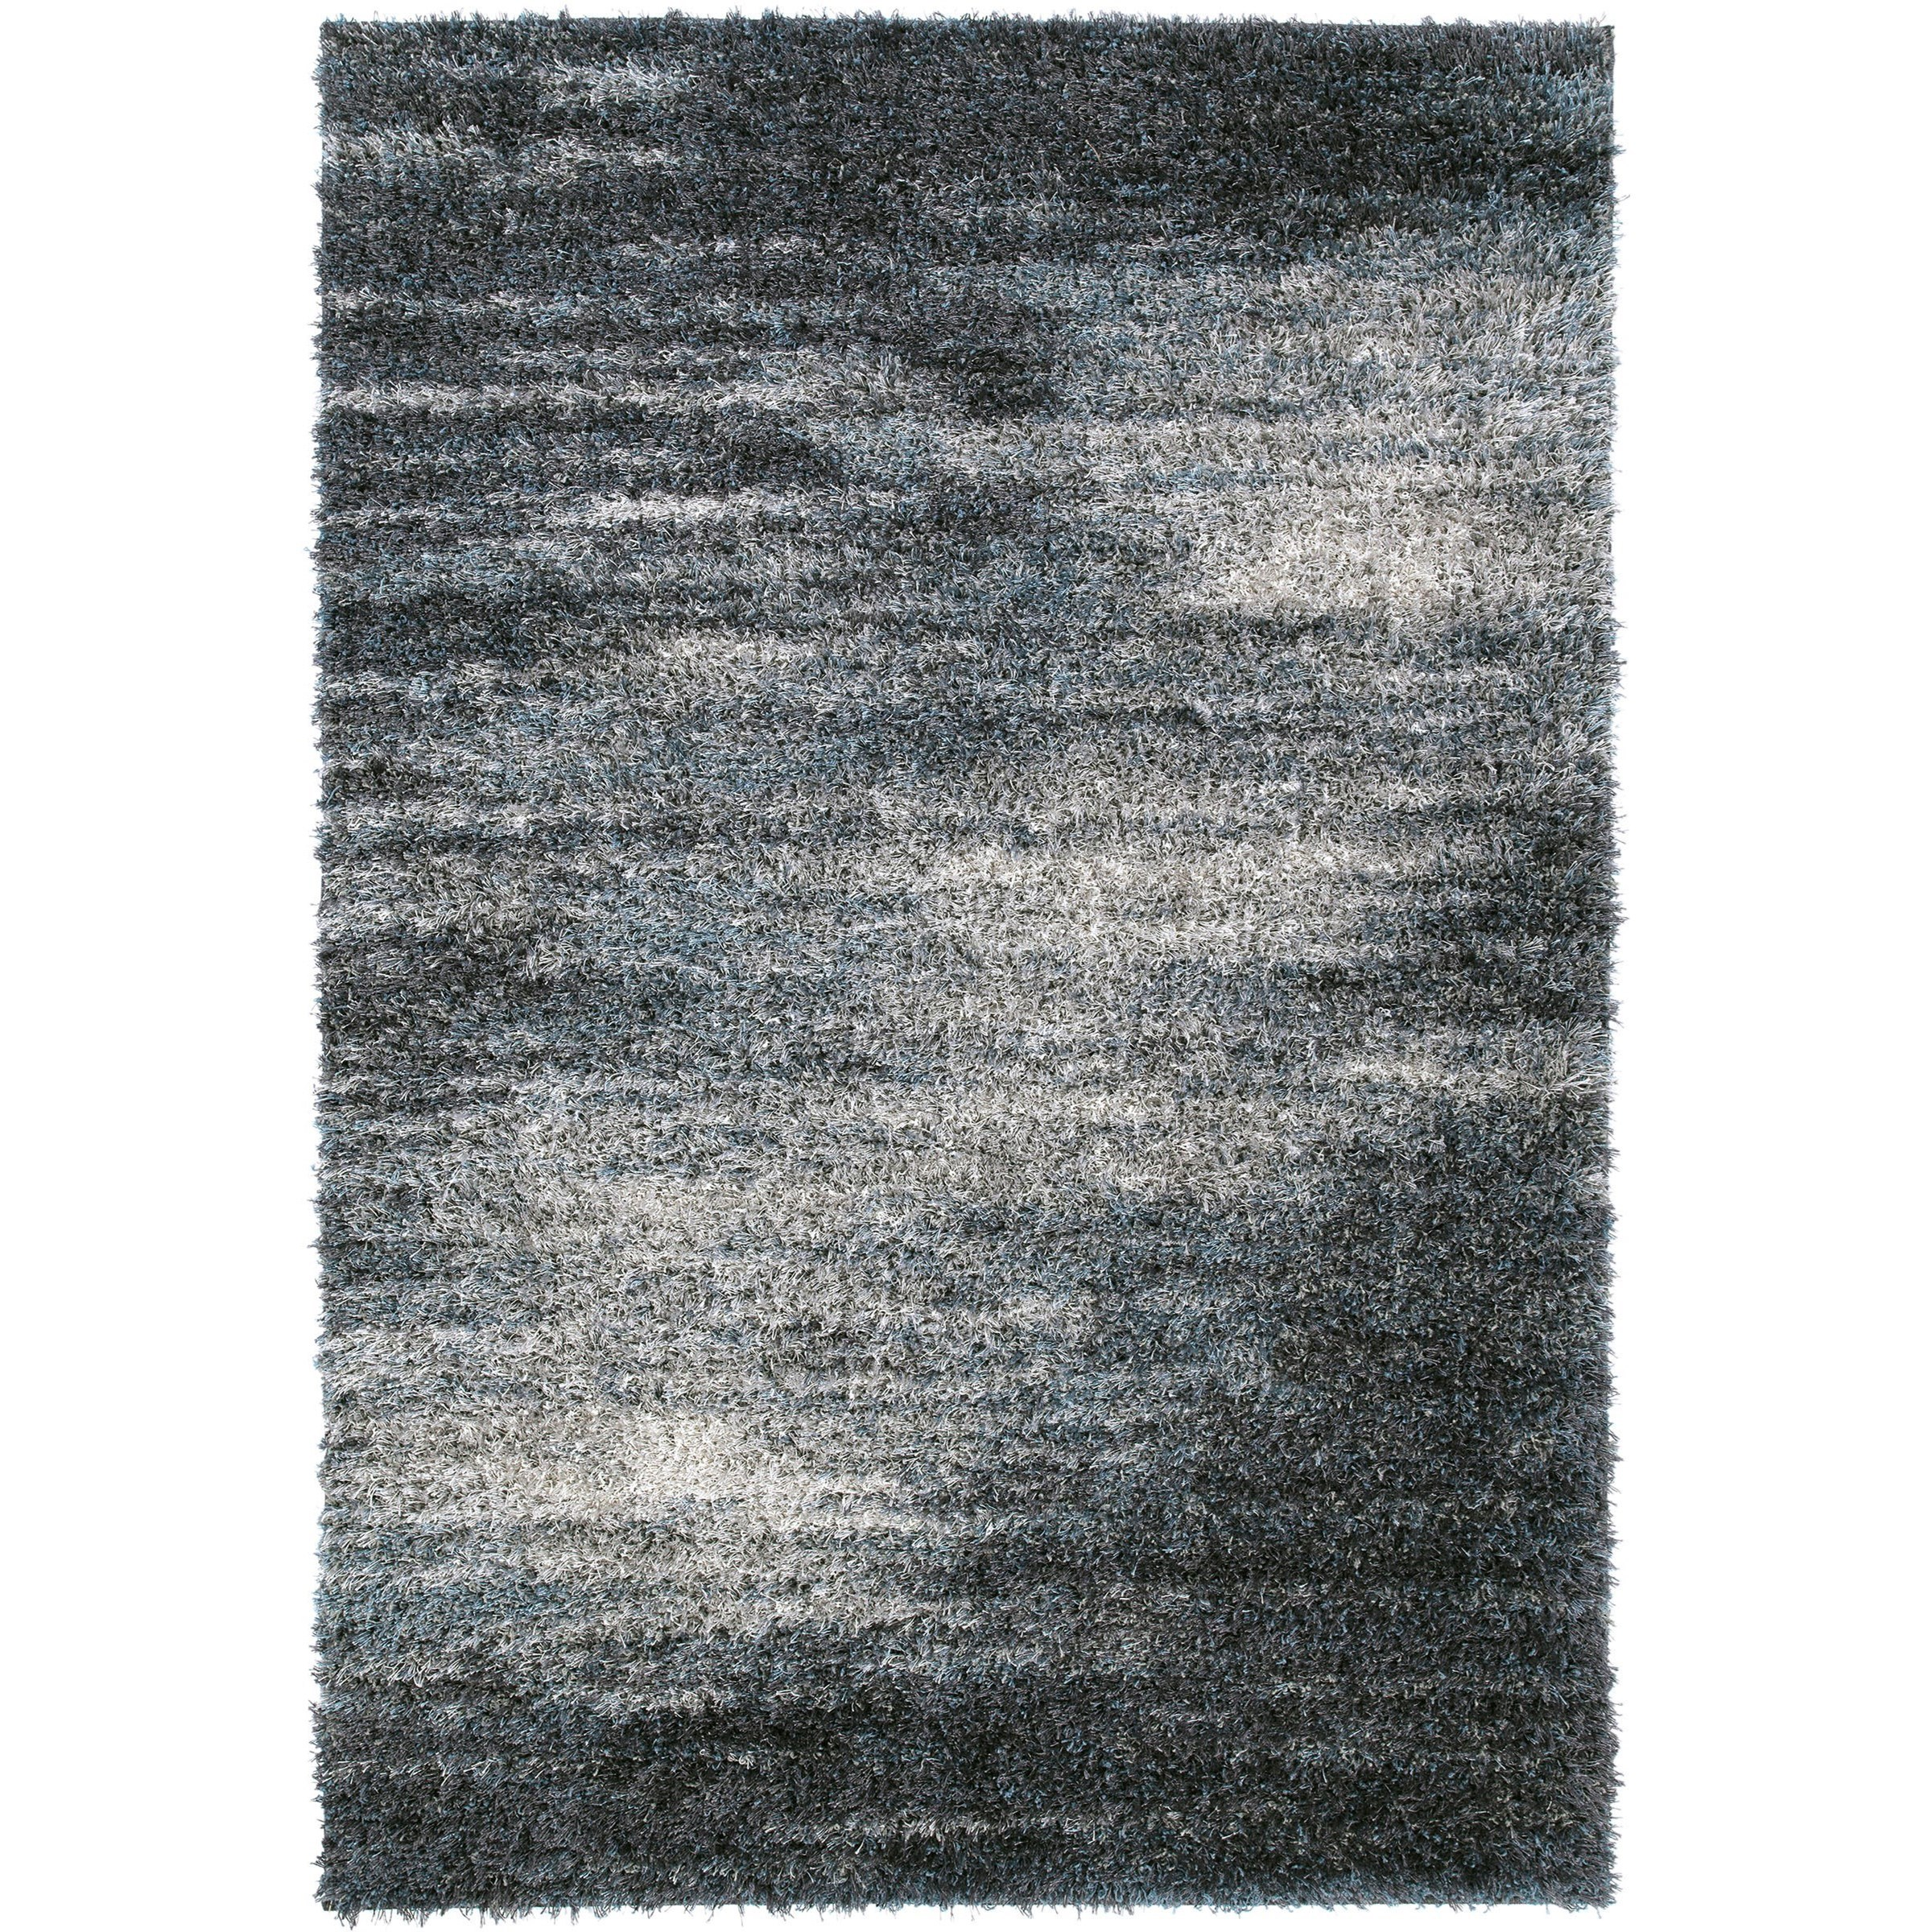 "Arturro Charcoal 7'10""X10'7"" Rug by Dalyn at Darvin Furniture"